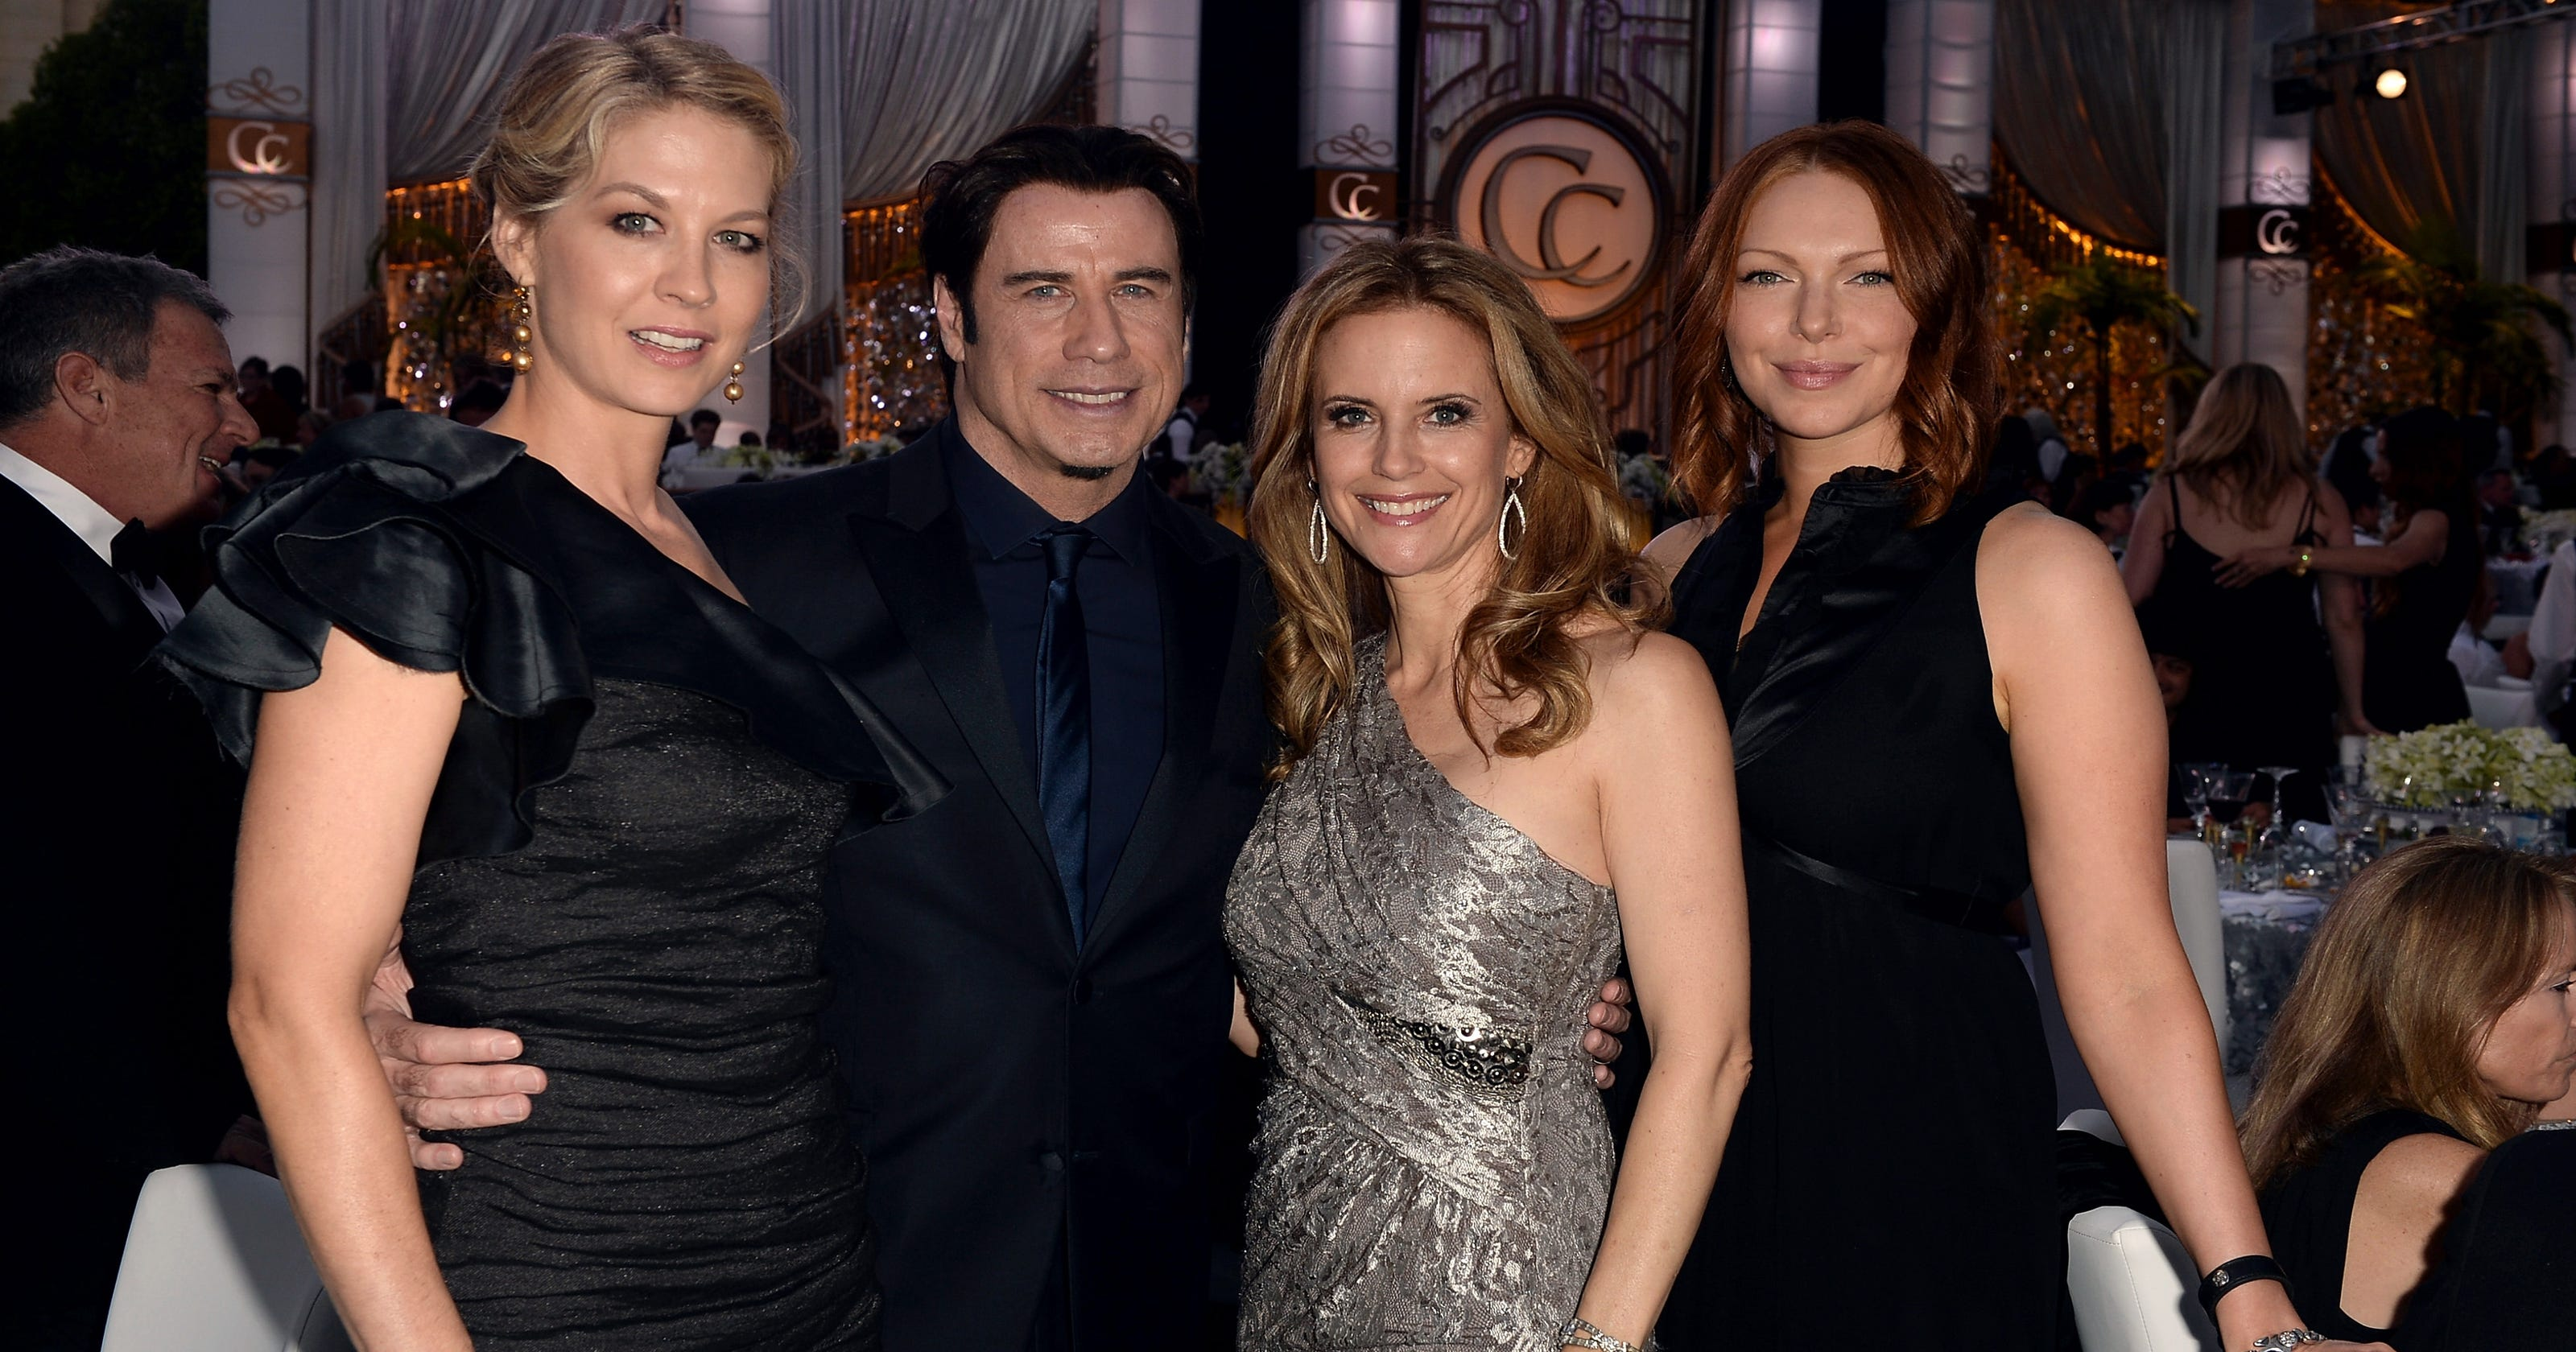 John Travolta Friends Party At Scientology Gala